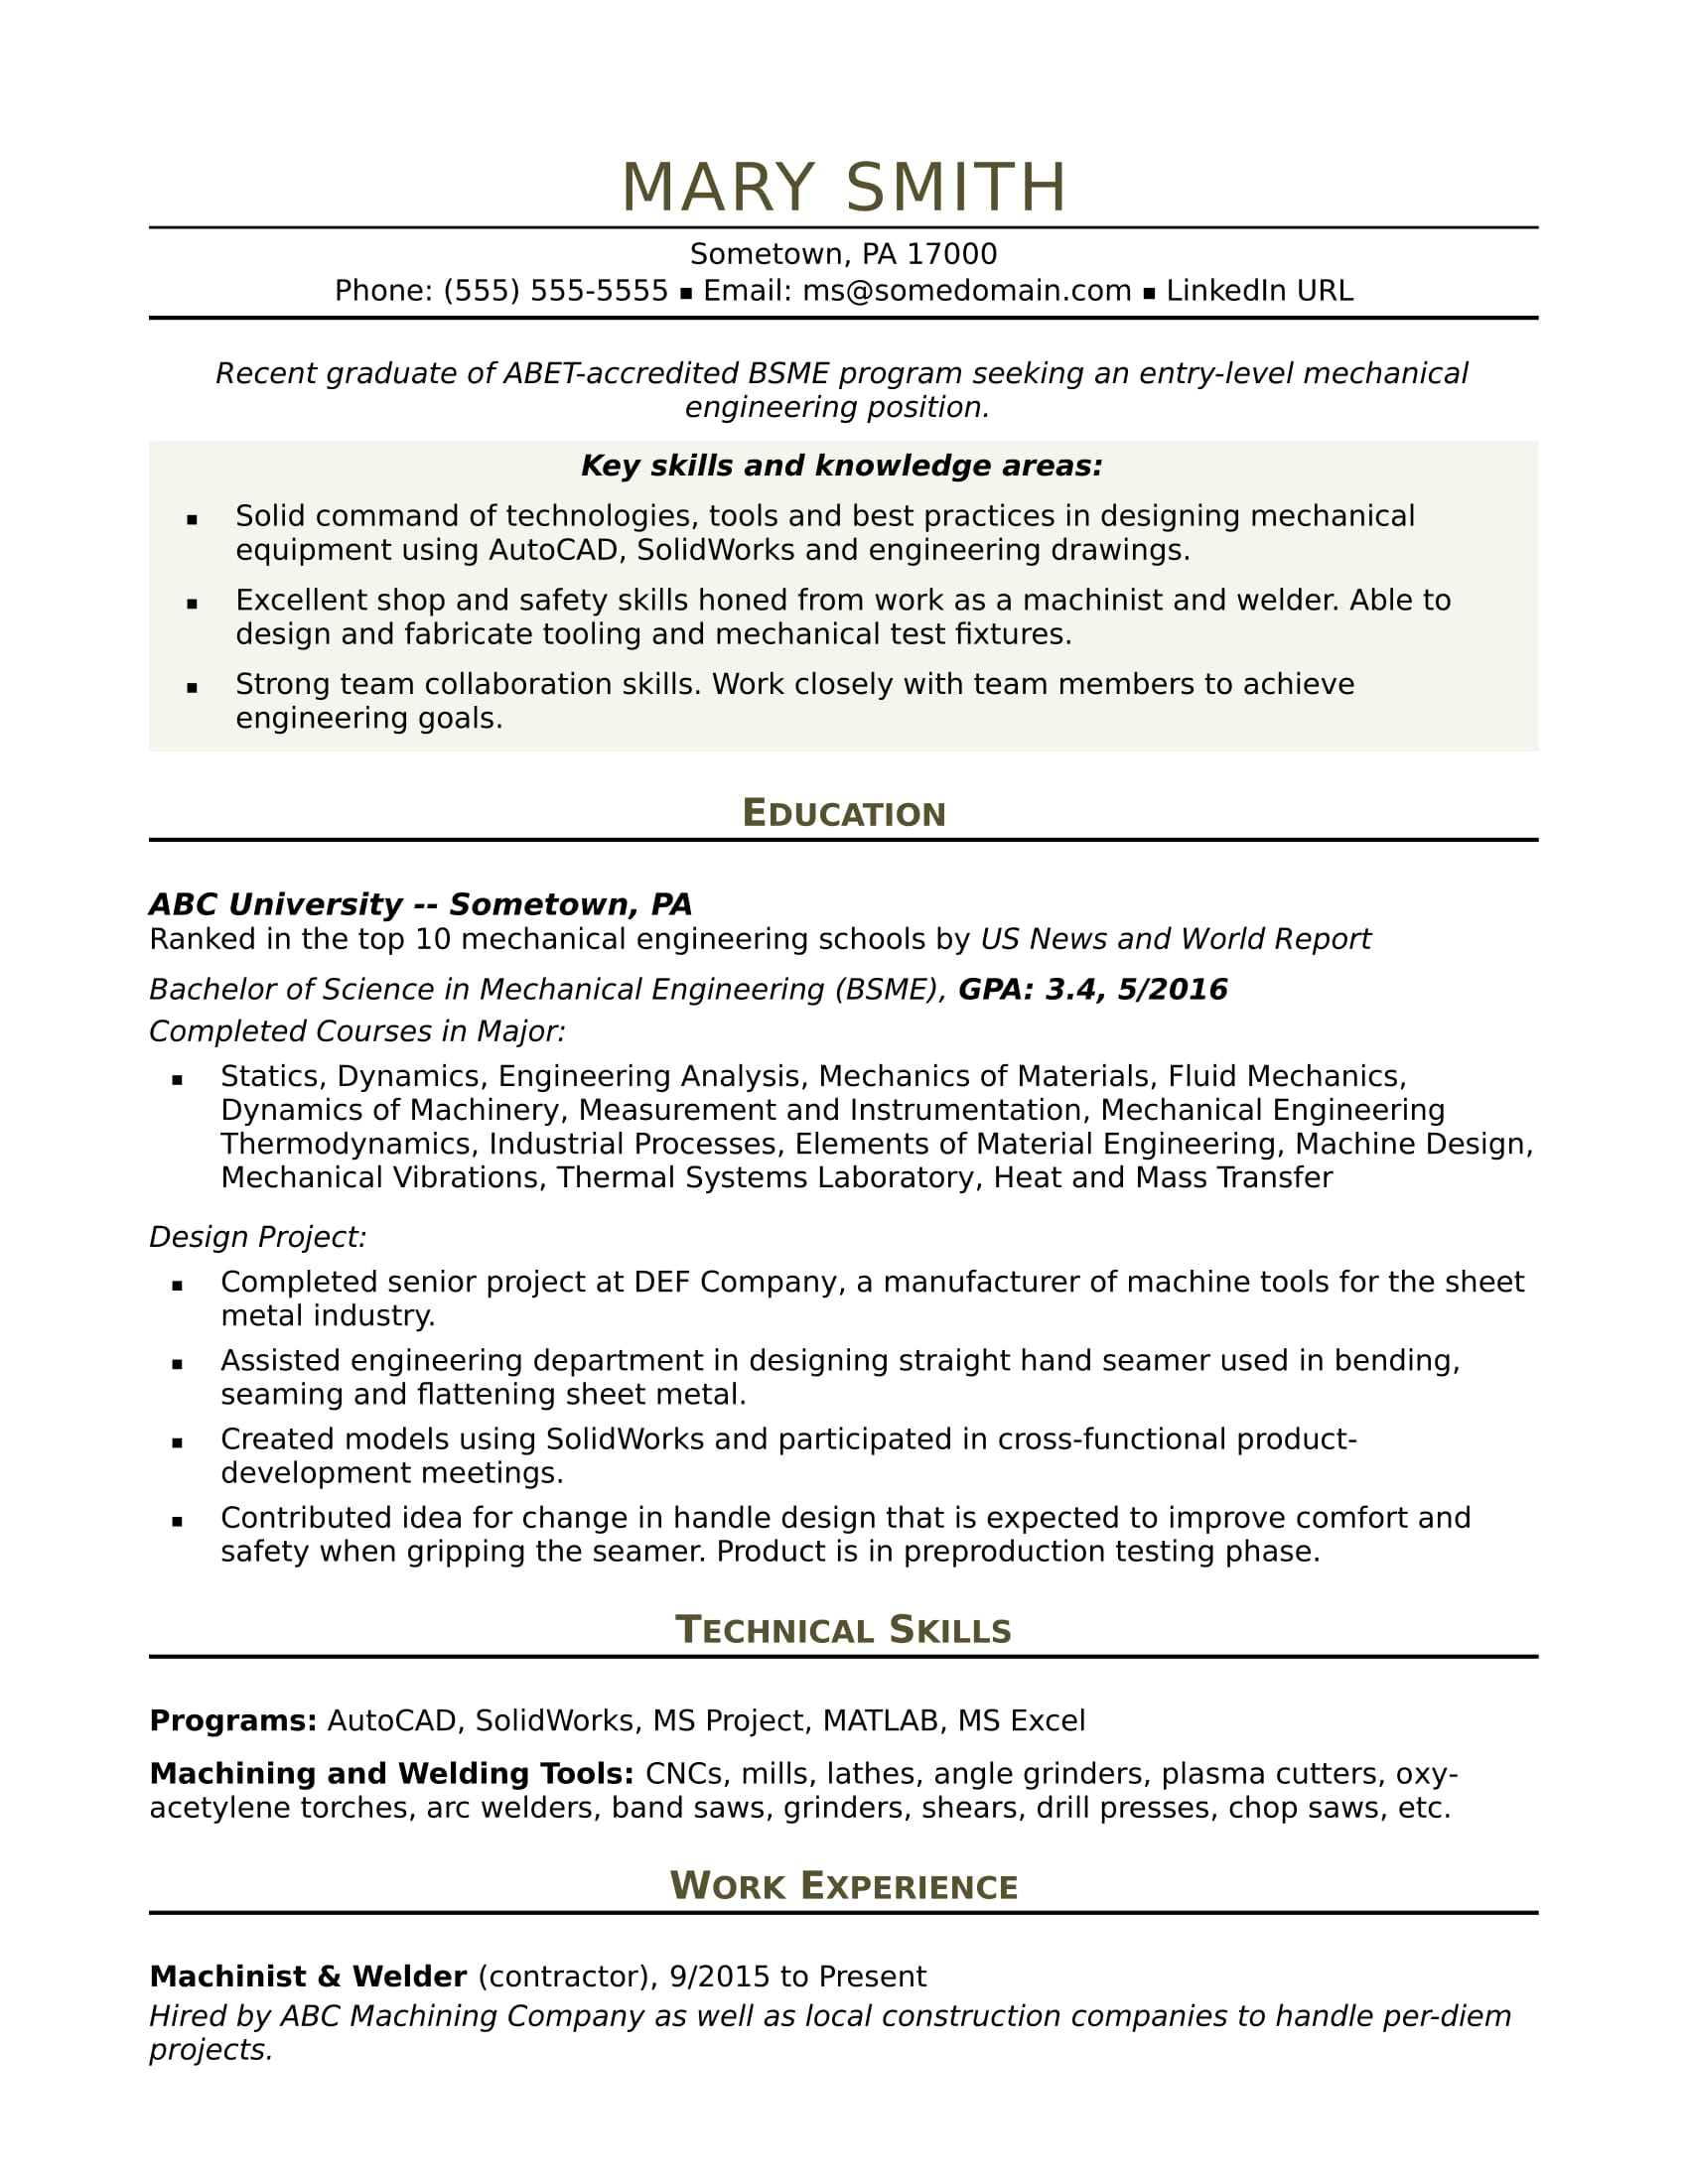 Service Engineer Resume Format Sample Resume For An Entry Level Mechanical Engineer